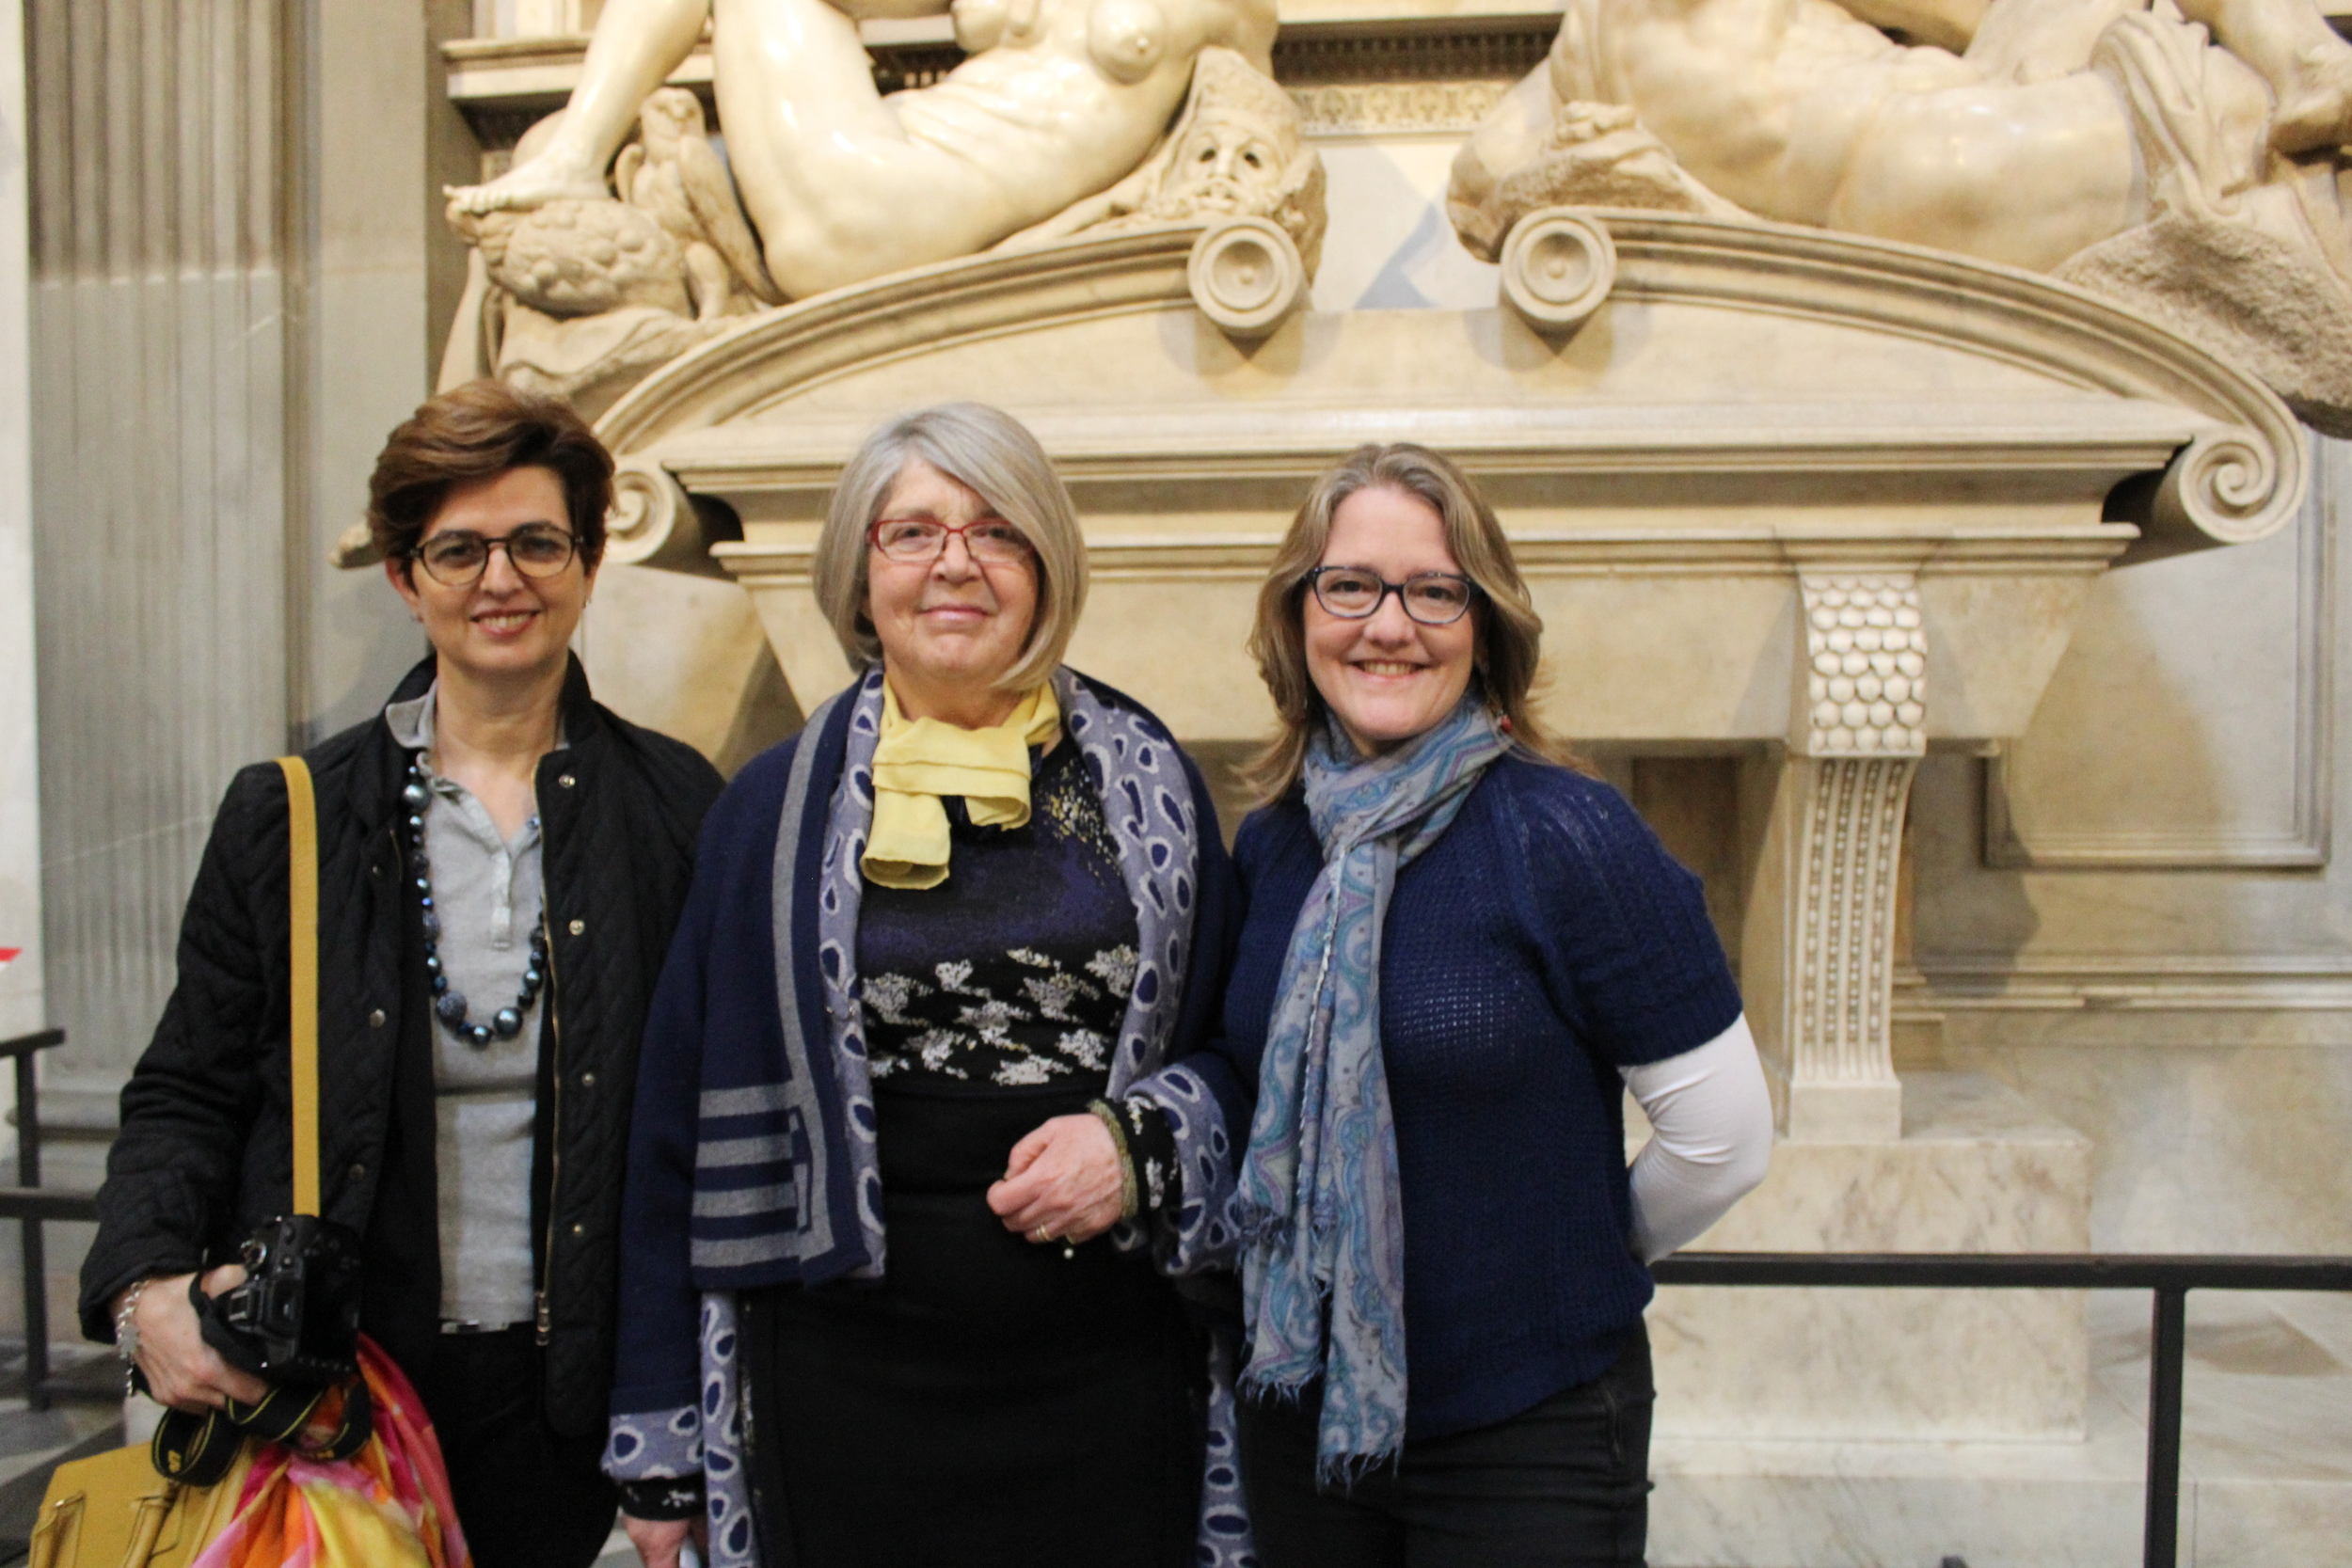 In the Medici Chapel New Sacristy with Director, Monica Bietti (center) and Paola Angelini of Guided Florence Tours (left).